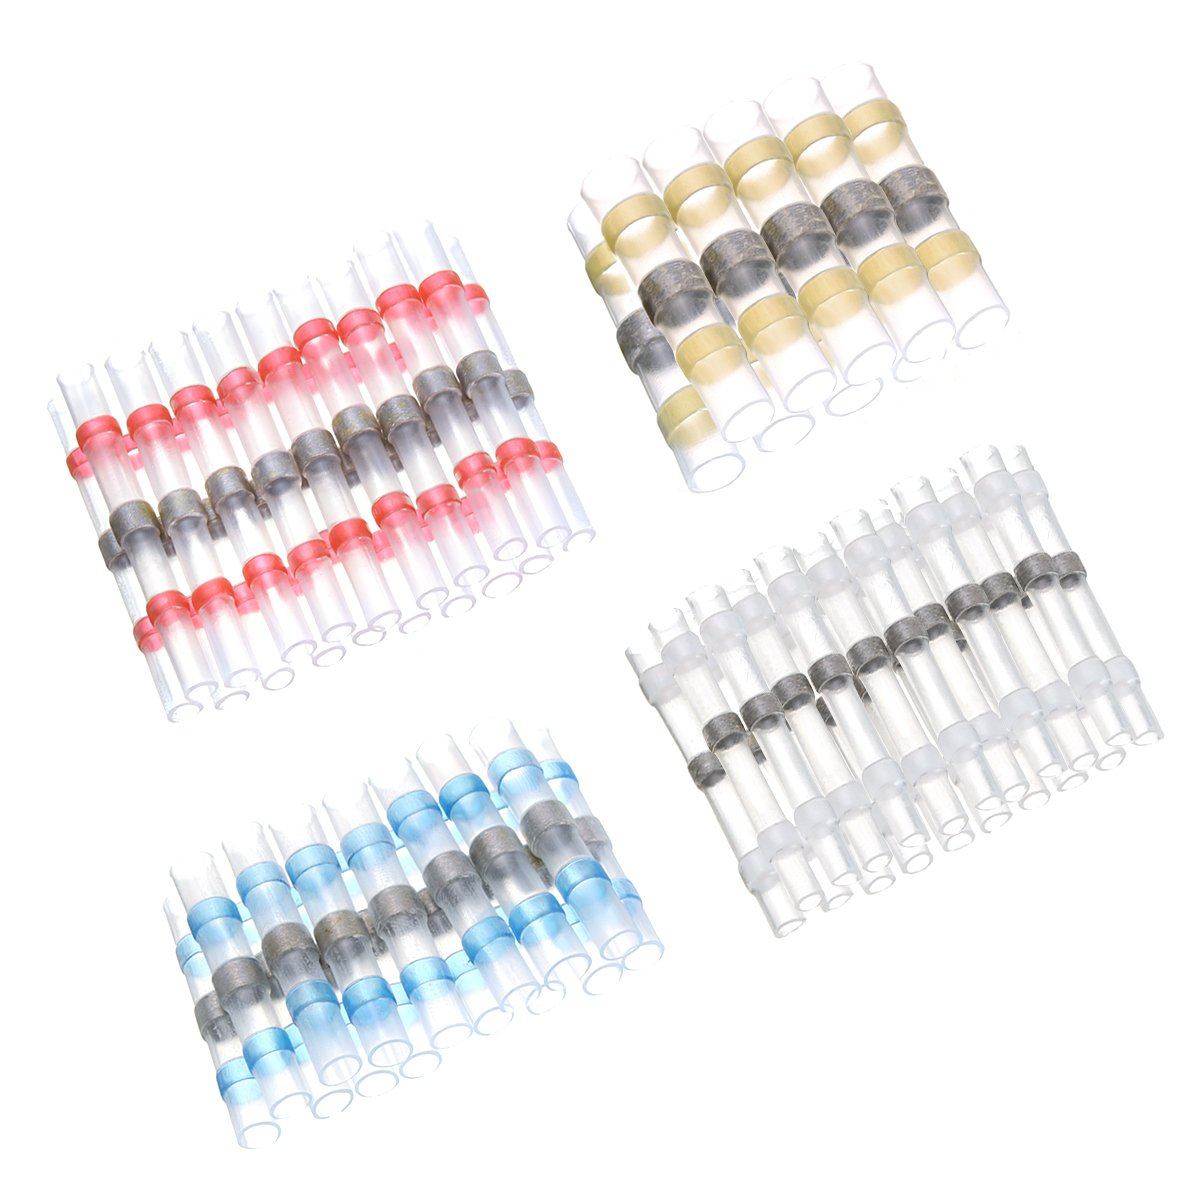 Red+Blue+White+Yellow SOLOOP 50pcs Heat Shrink Connectors Wire terminals Crimp terminals with Soldering Sleeve